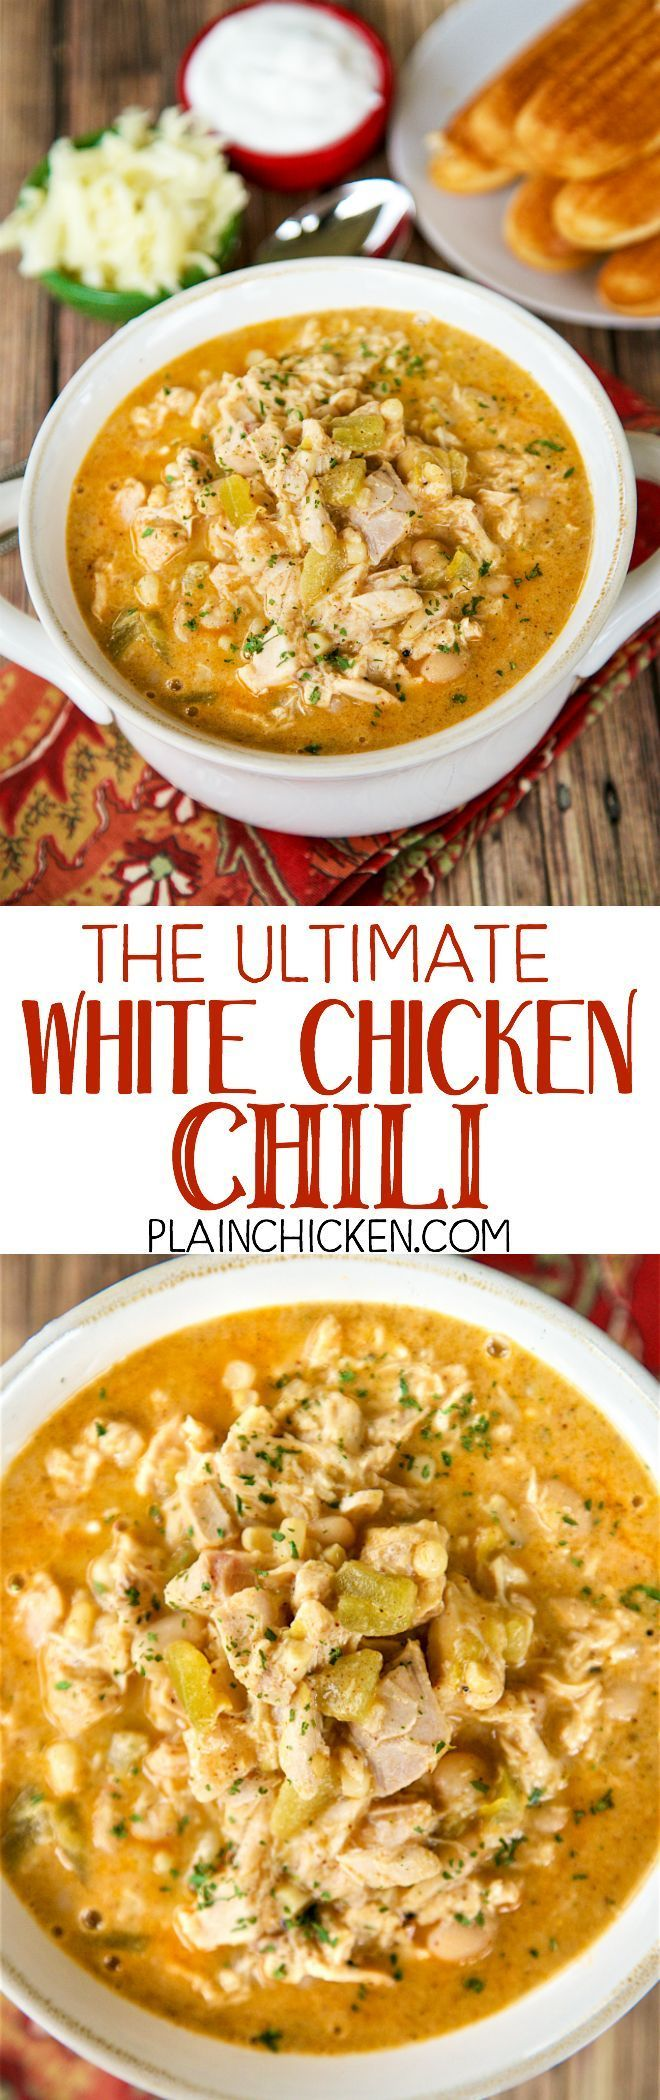 The Ultimate White Chicken Chili The Best Of The Best White Chicken Chilis So Good And Ready To Eat In Under 20 Minutes Rotiss Stuffed Peppers Recipes Food